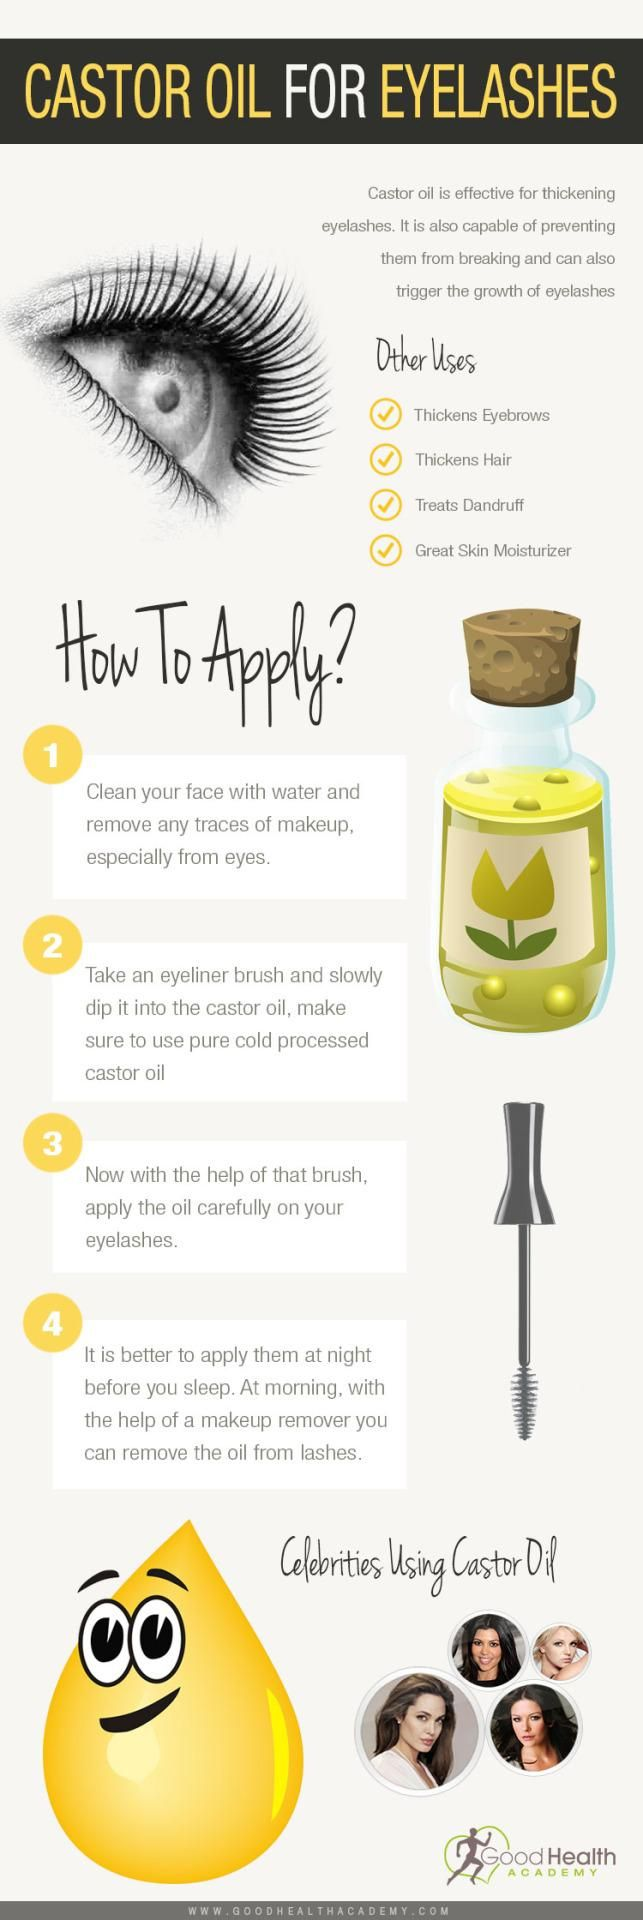 25+ best ideas about Lashes grow on Pinterest | Lash growth serum ...